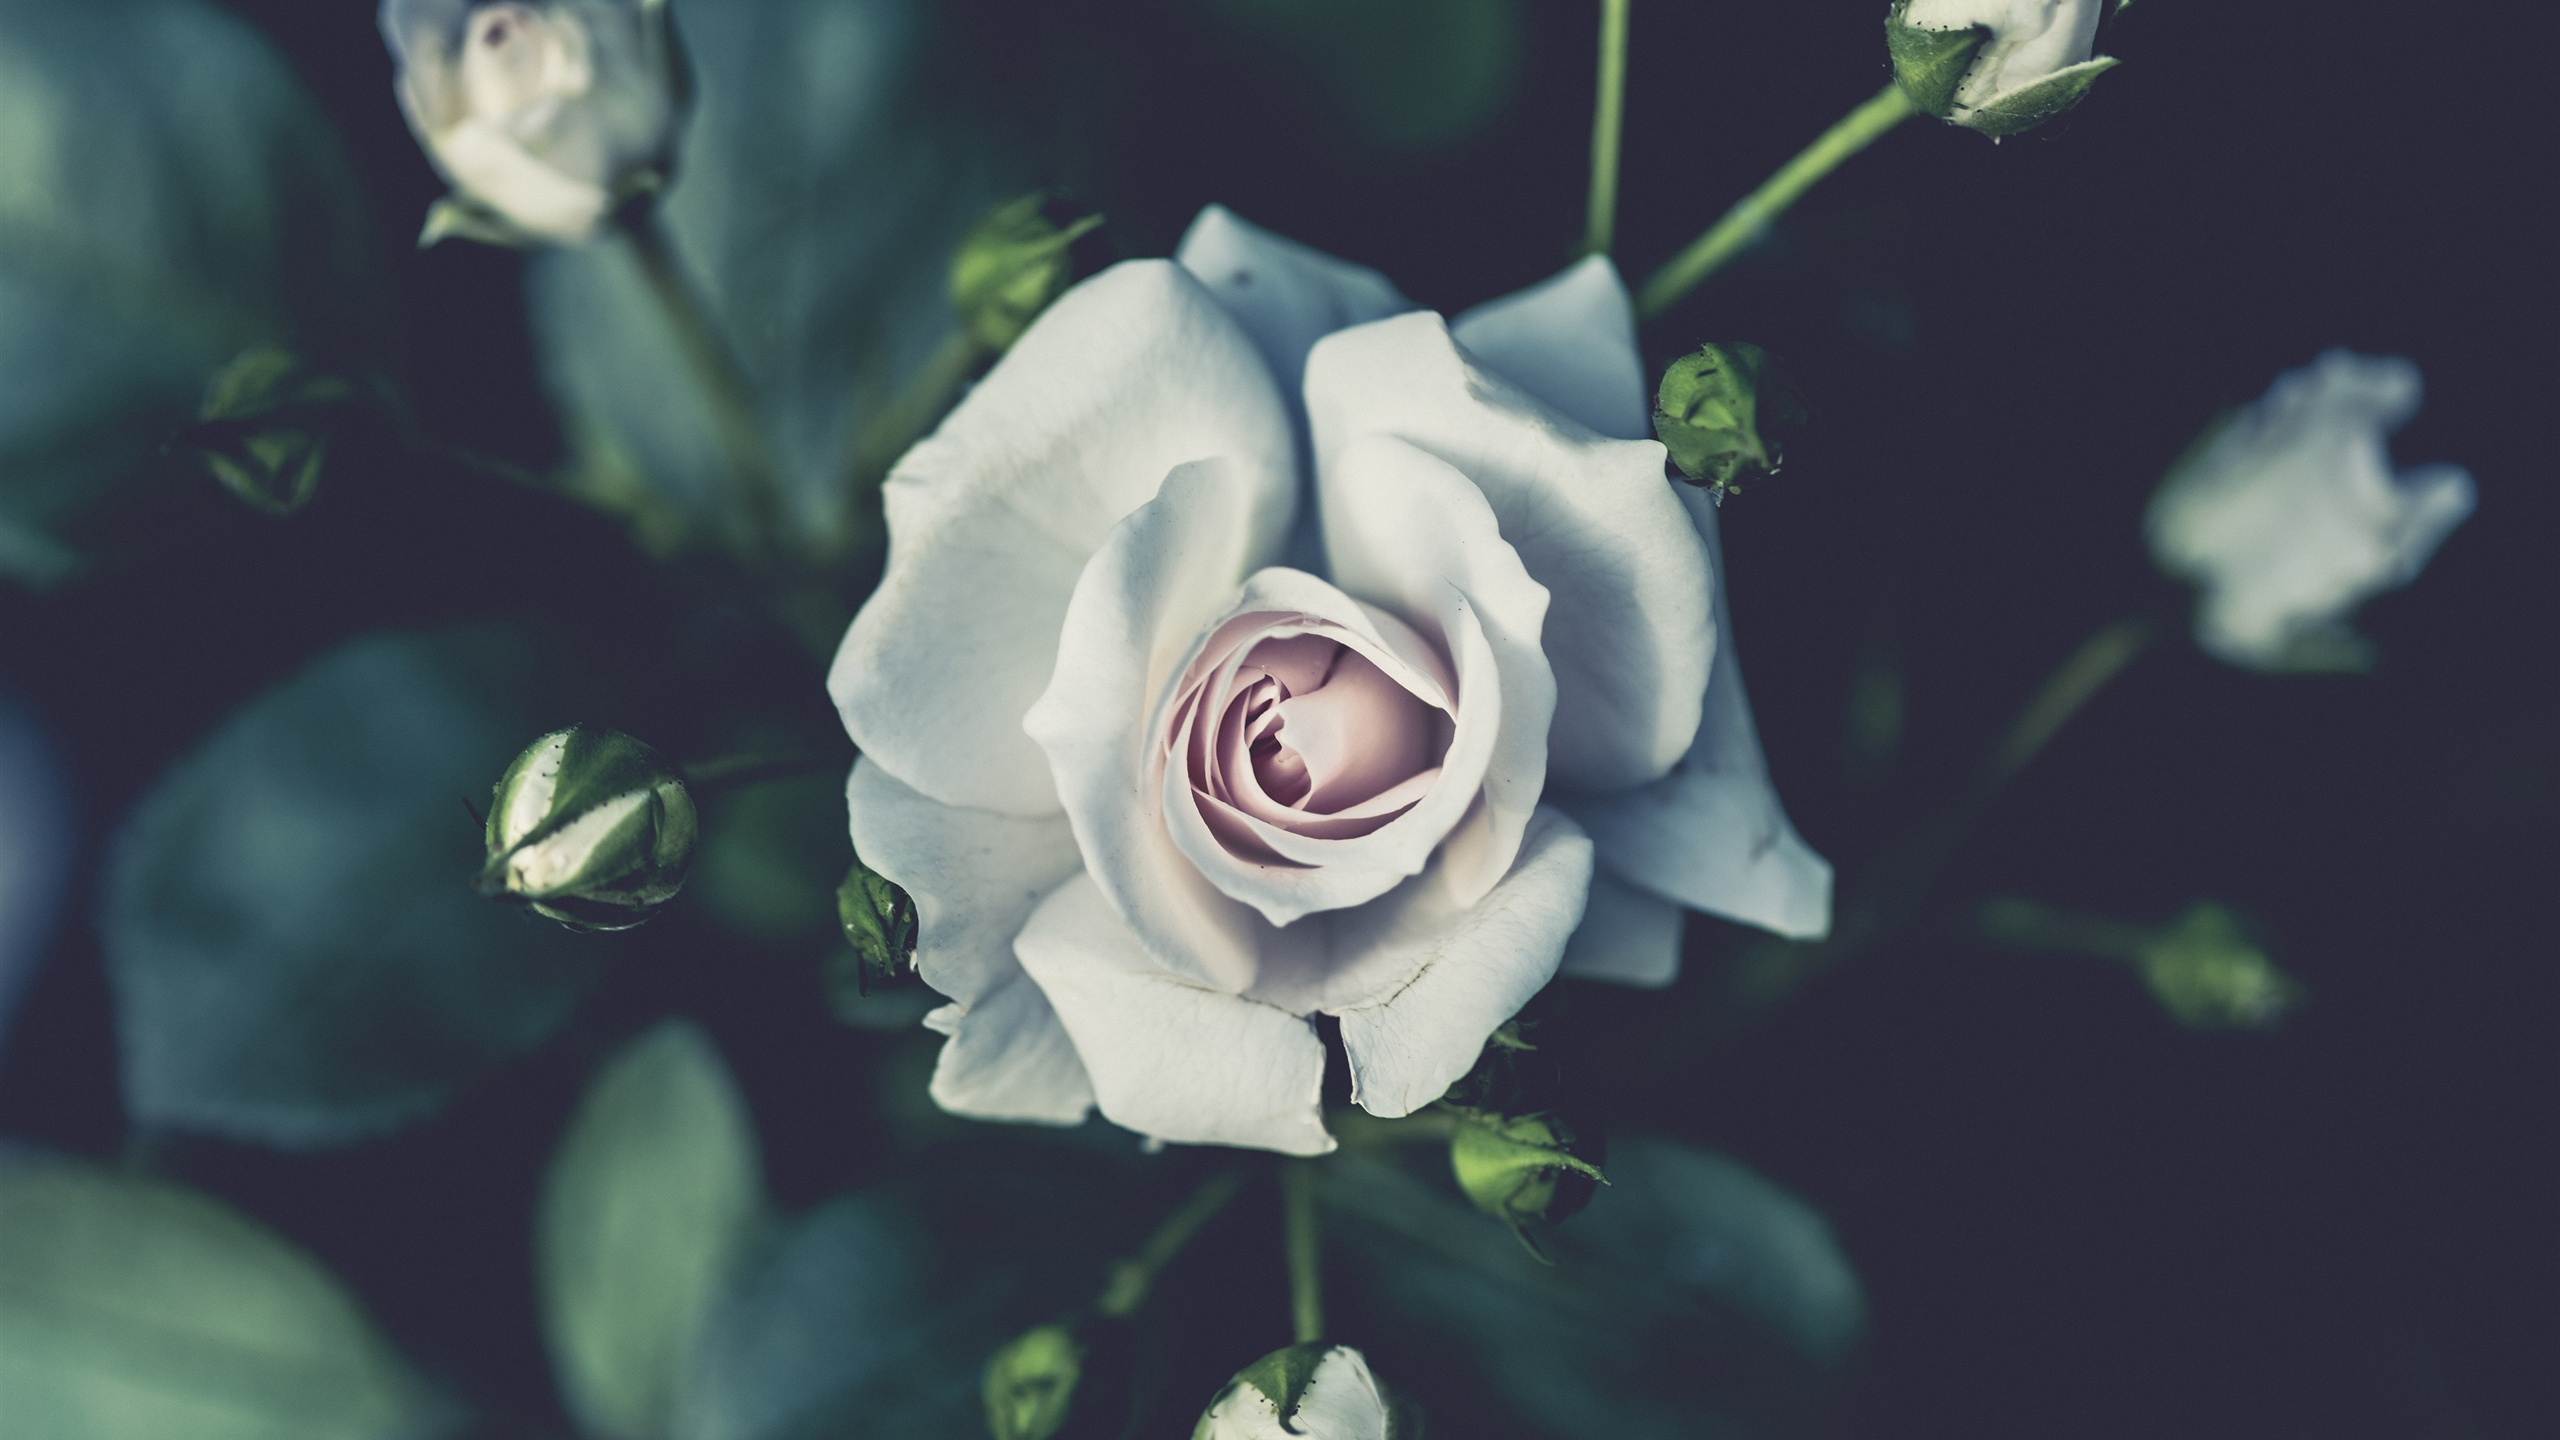 Wallpaper White Rose Photography Buds Blurry 3840x2160 Uhd